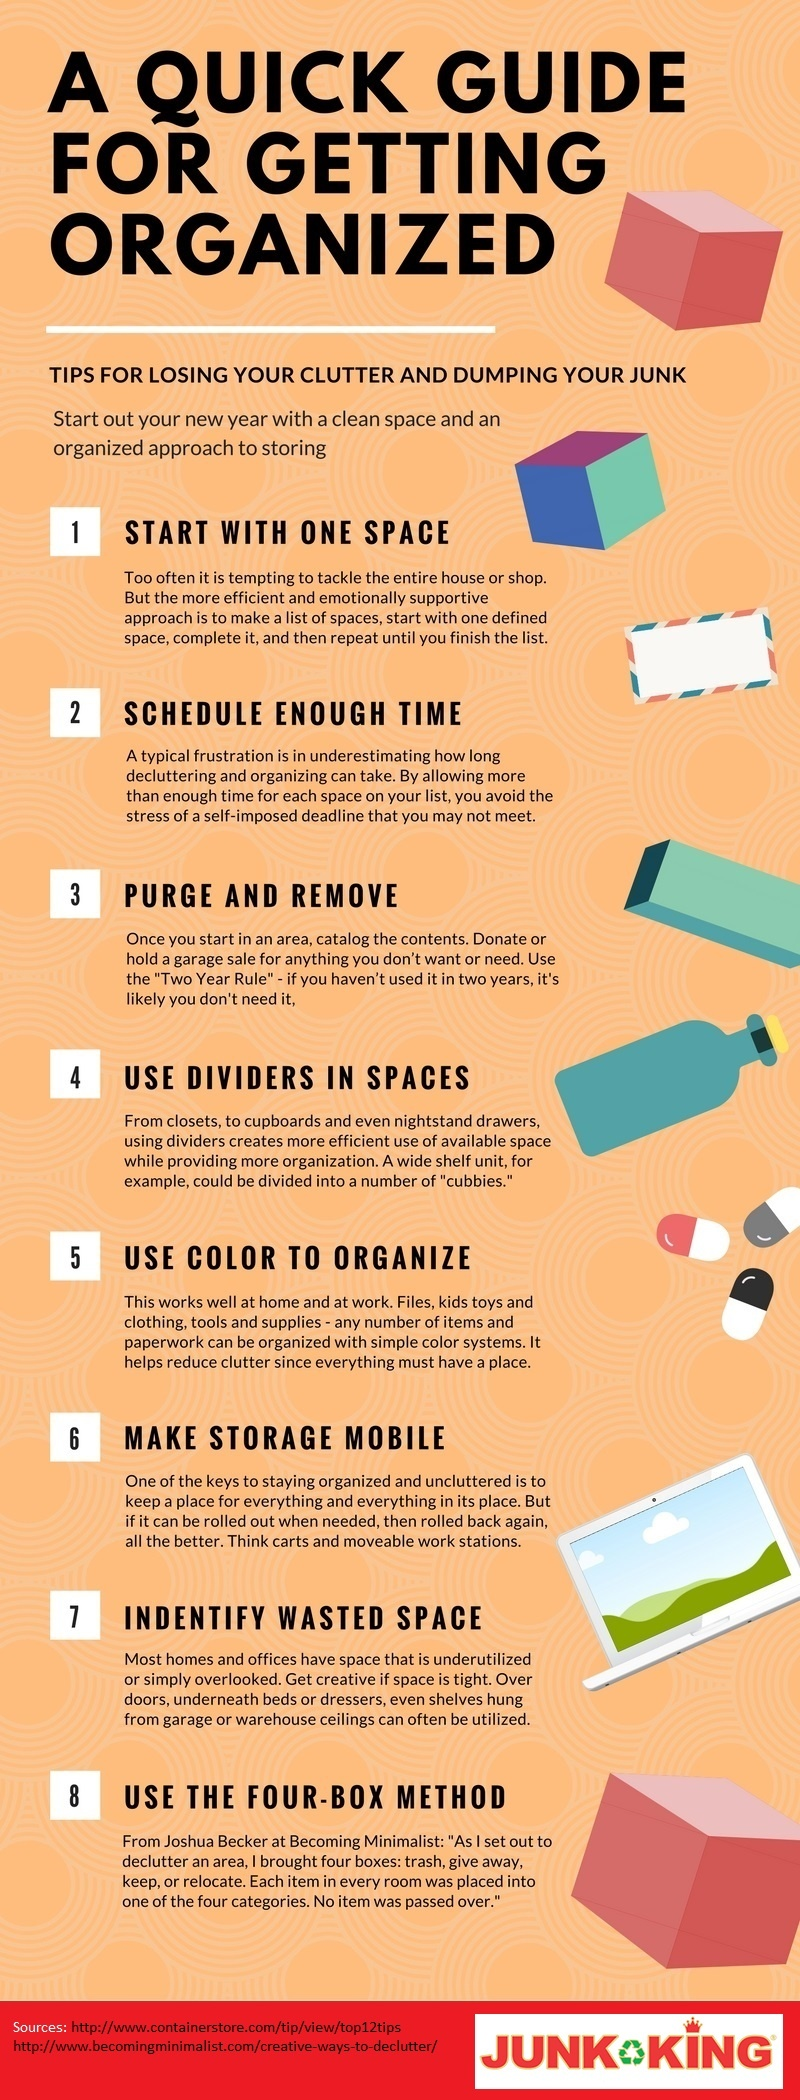 a_quick_guide_for_getting_organized